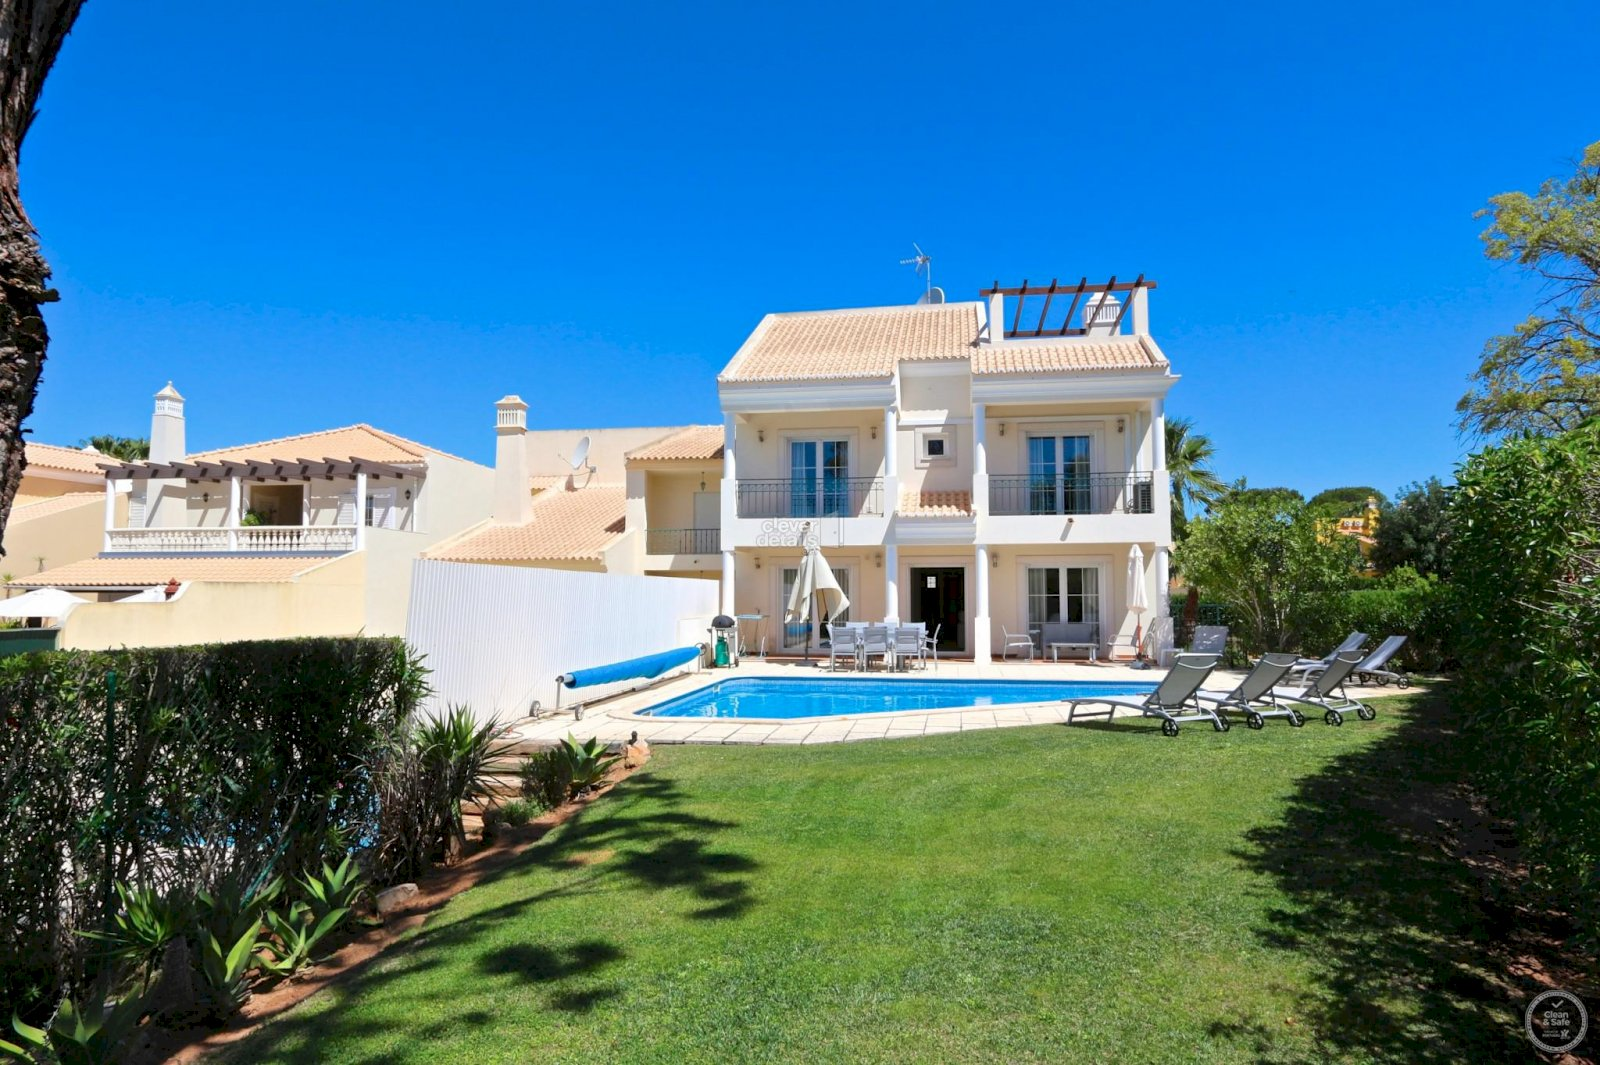 4 bedroomed holiday rentals villa, located in quiet area of Vilamoura.